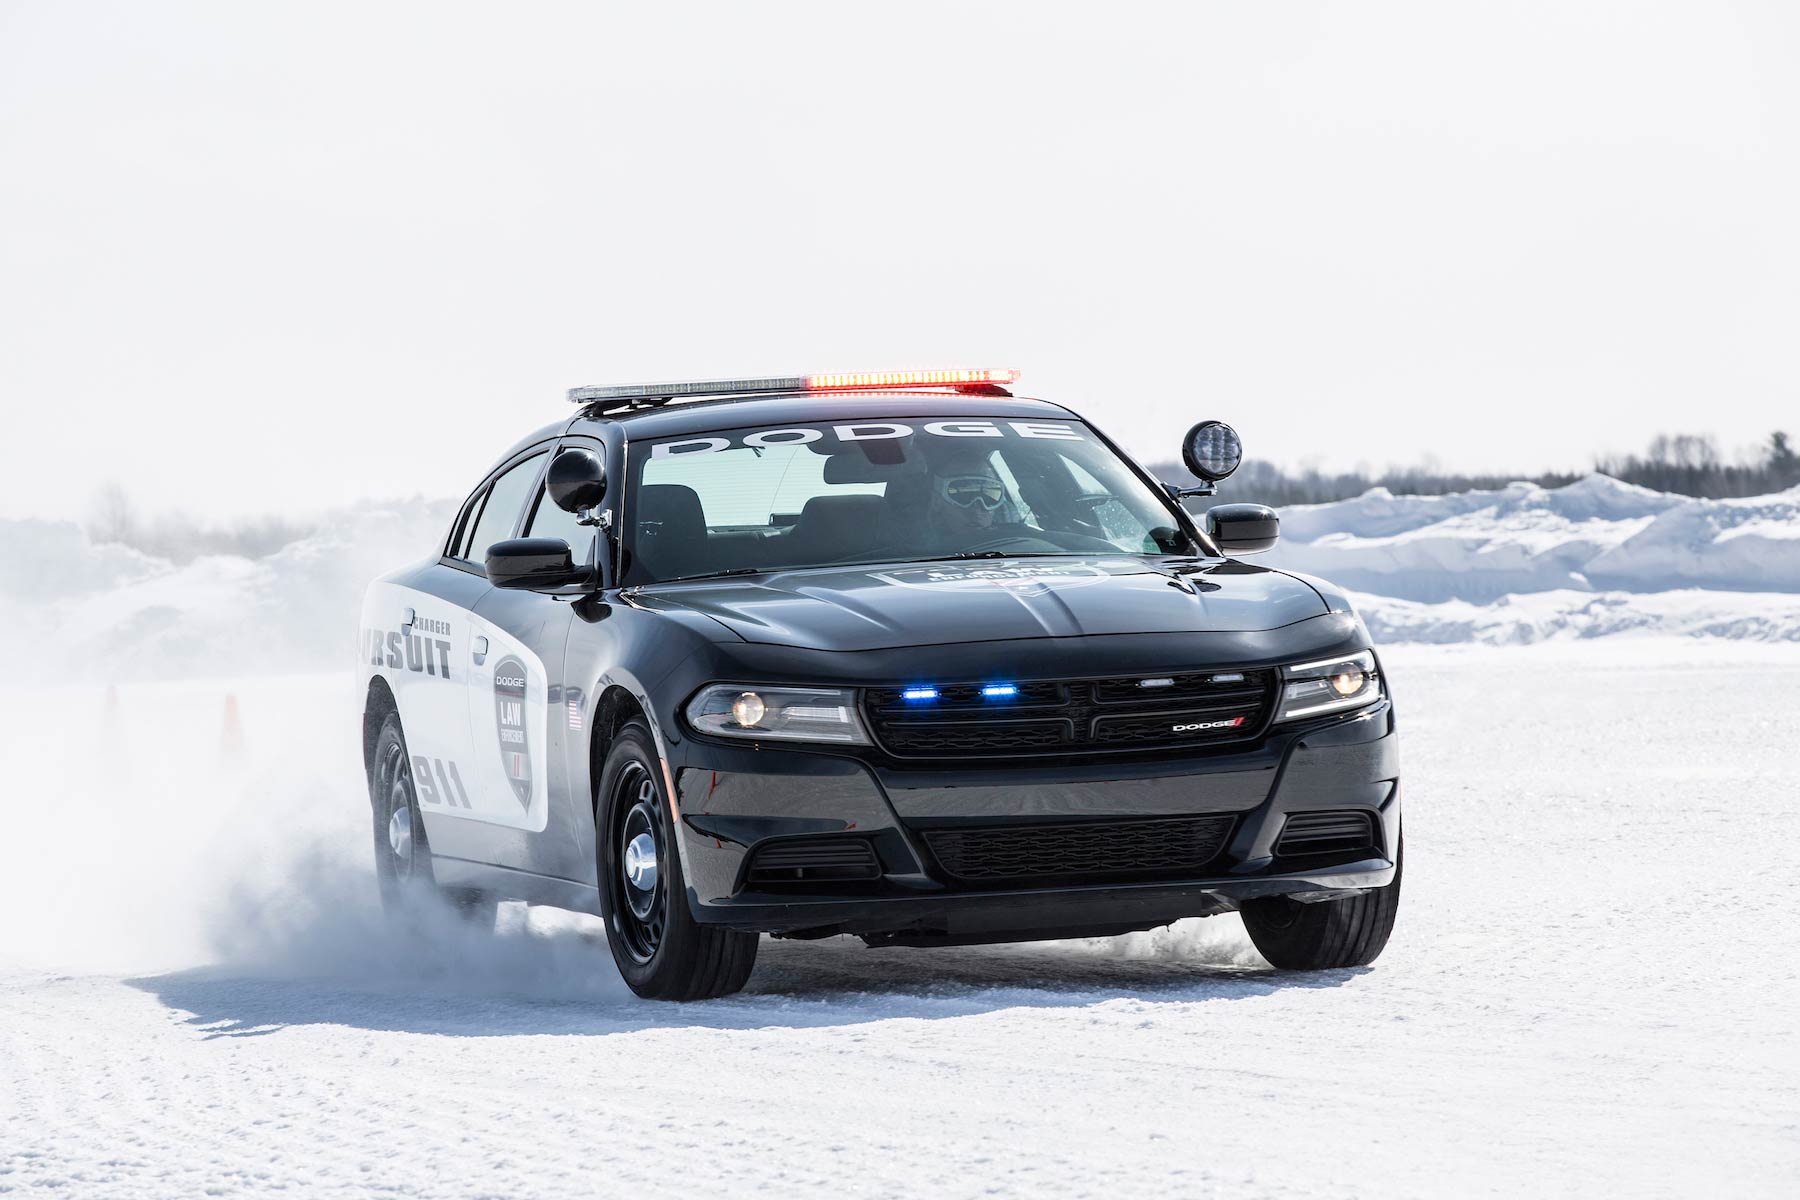 2018 Dodge Charger Police Pursuit V8 AWD